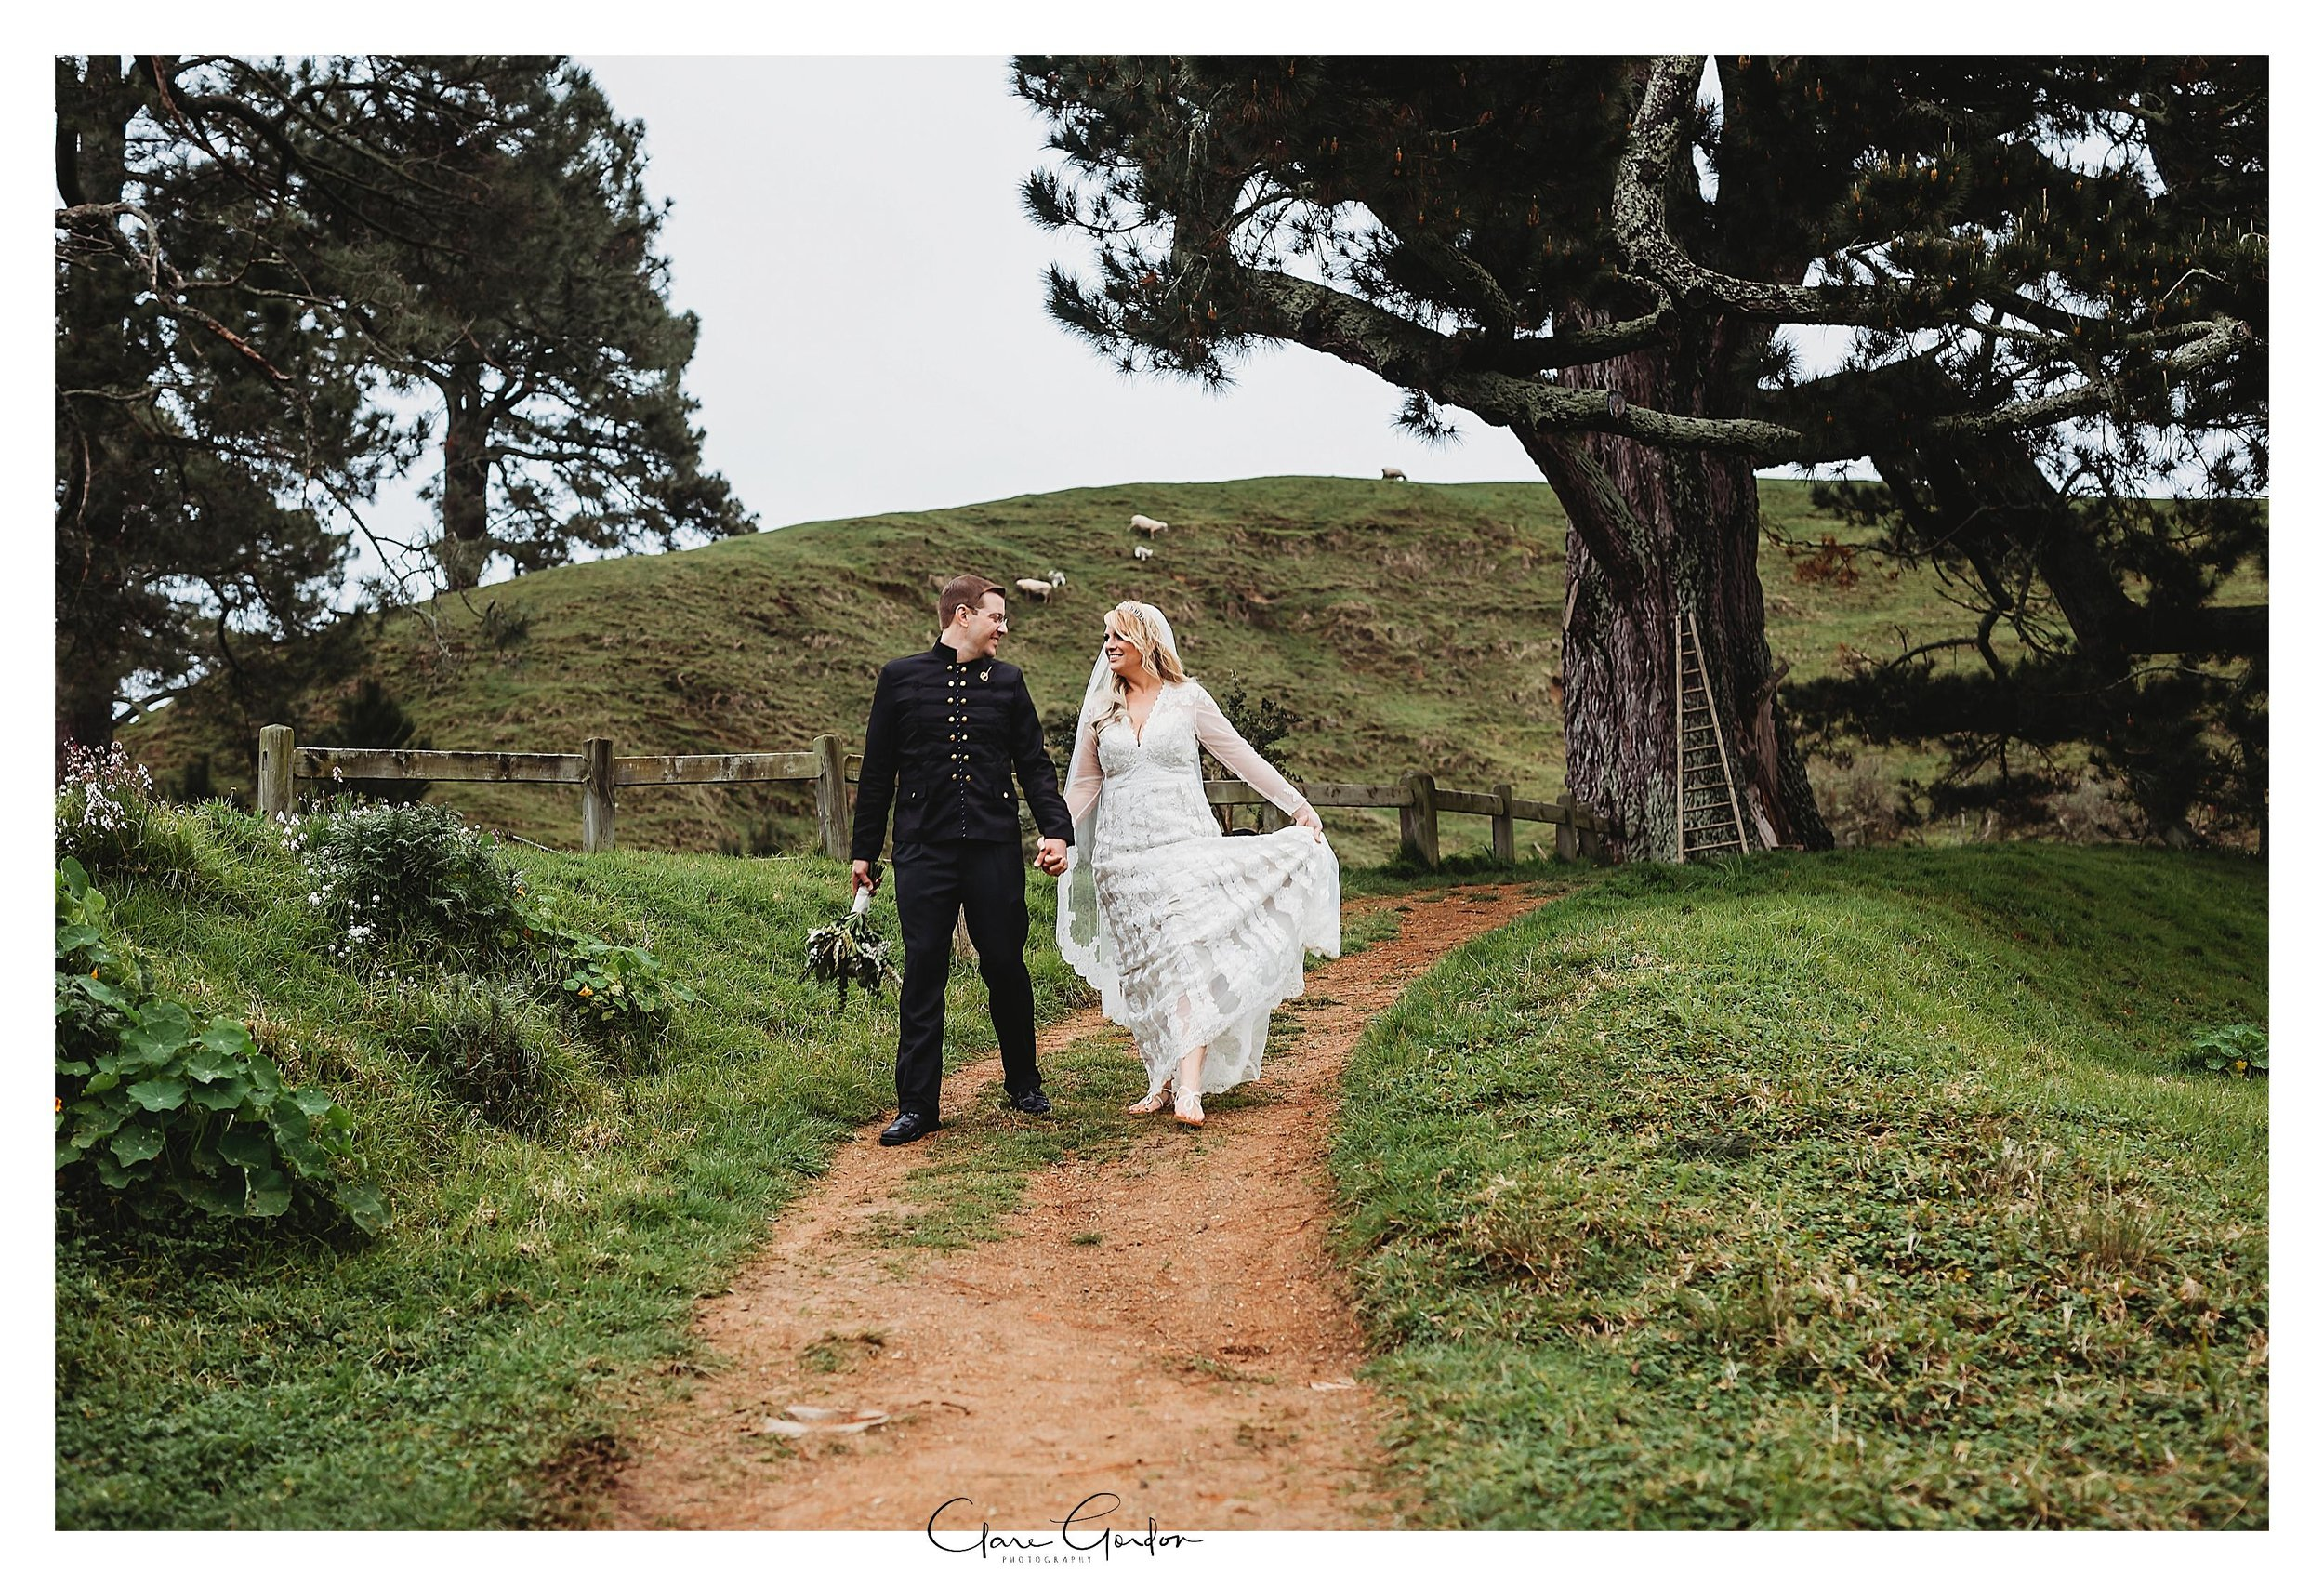 Hobbiton-movie-set-wedding-photo-matamata-bride-and-groom-Photo_newZealand-wedding-photographer (6).jpg